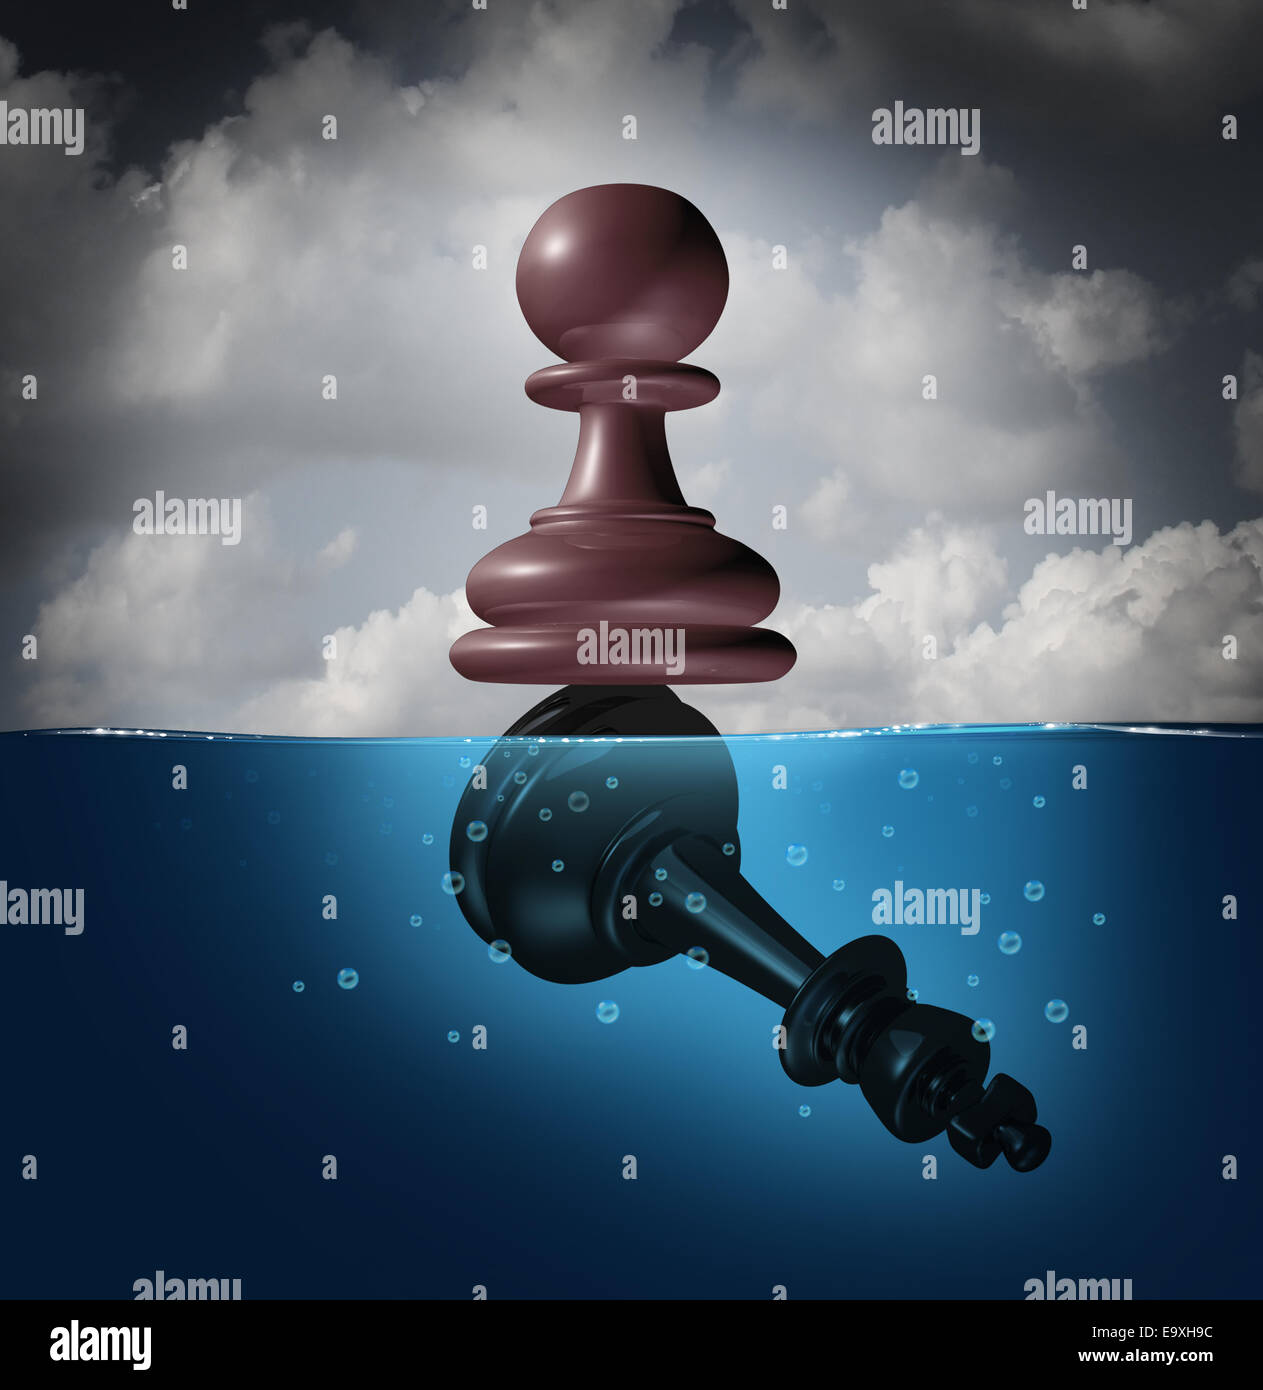 Winner and champion success concept as a chess pawn piece standing on top of a drowning king as a business metaphor - Stock Image